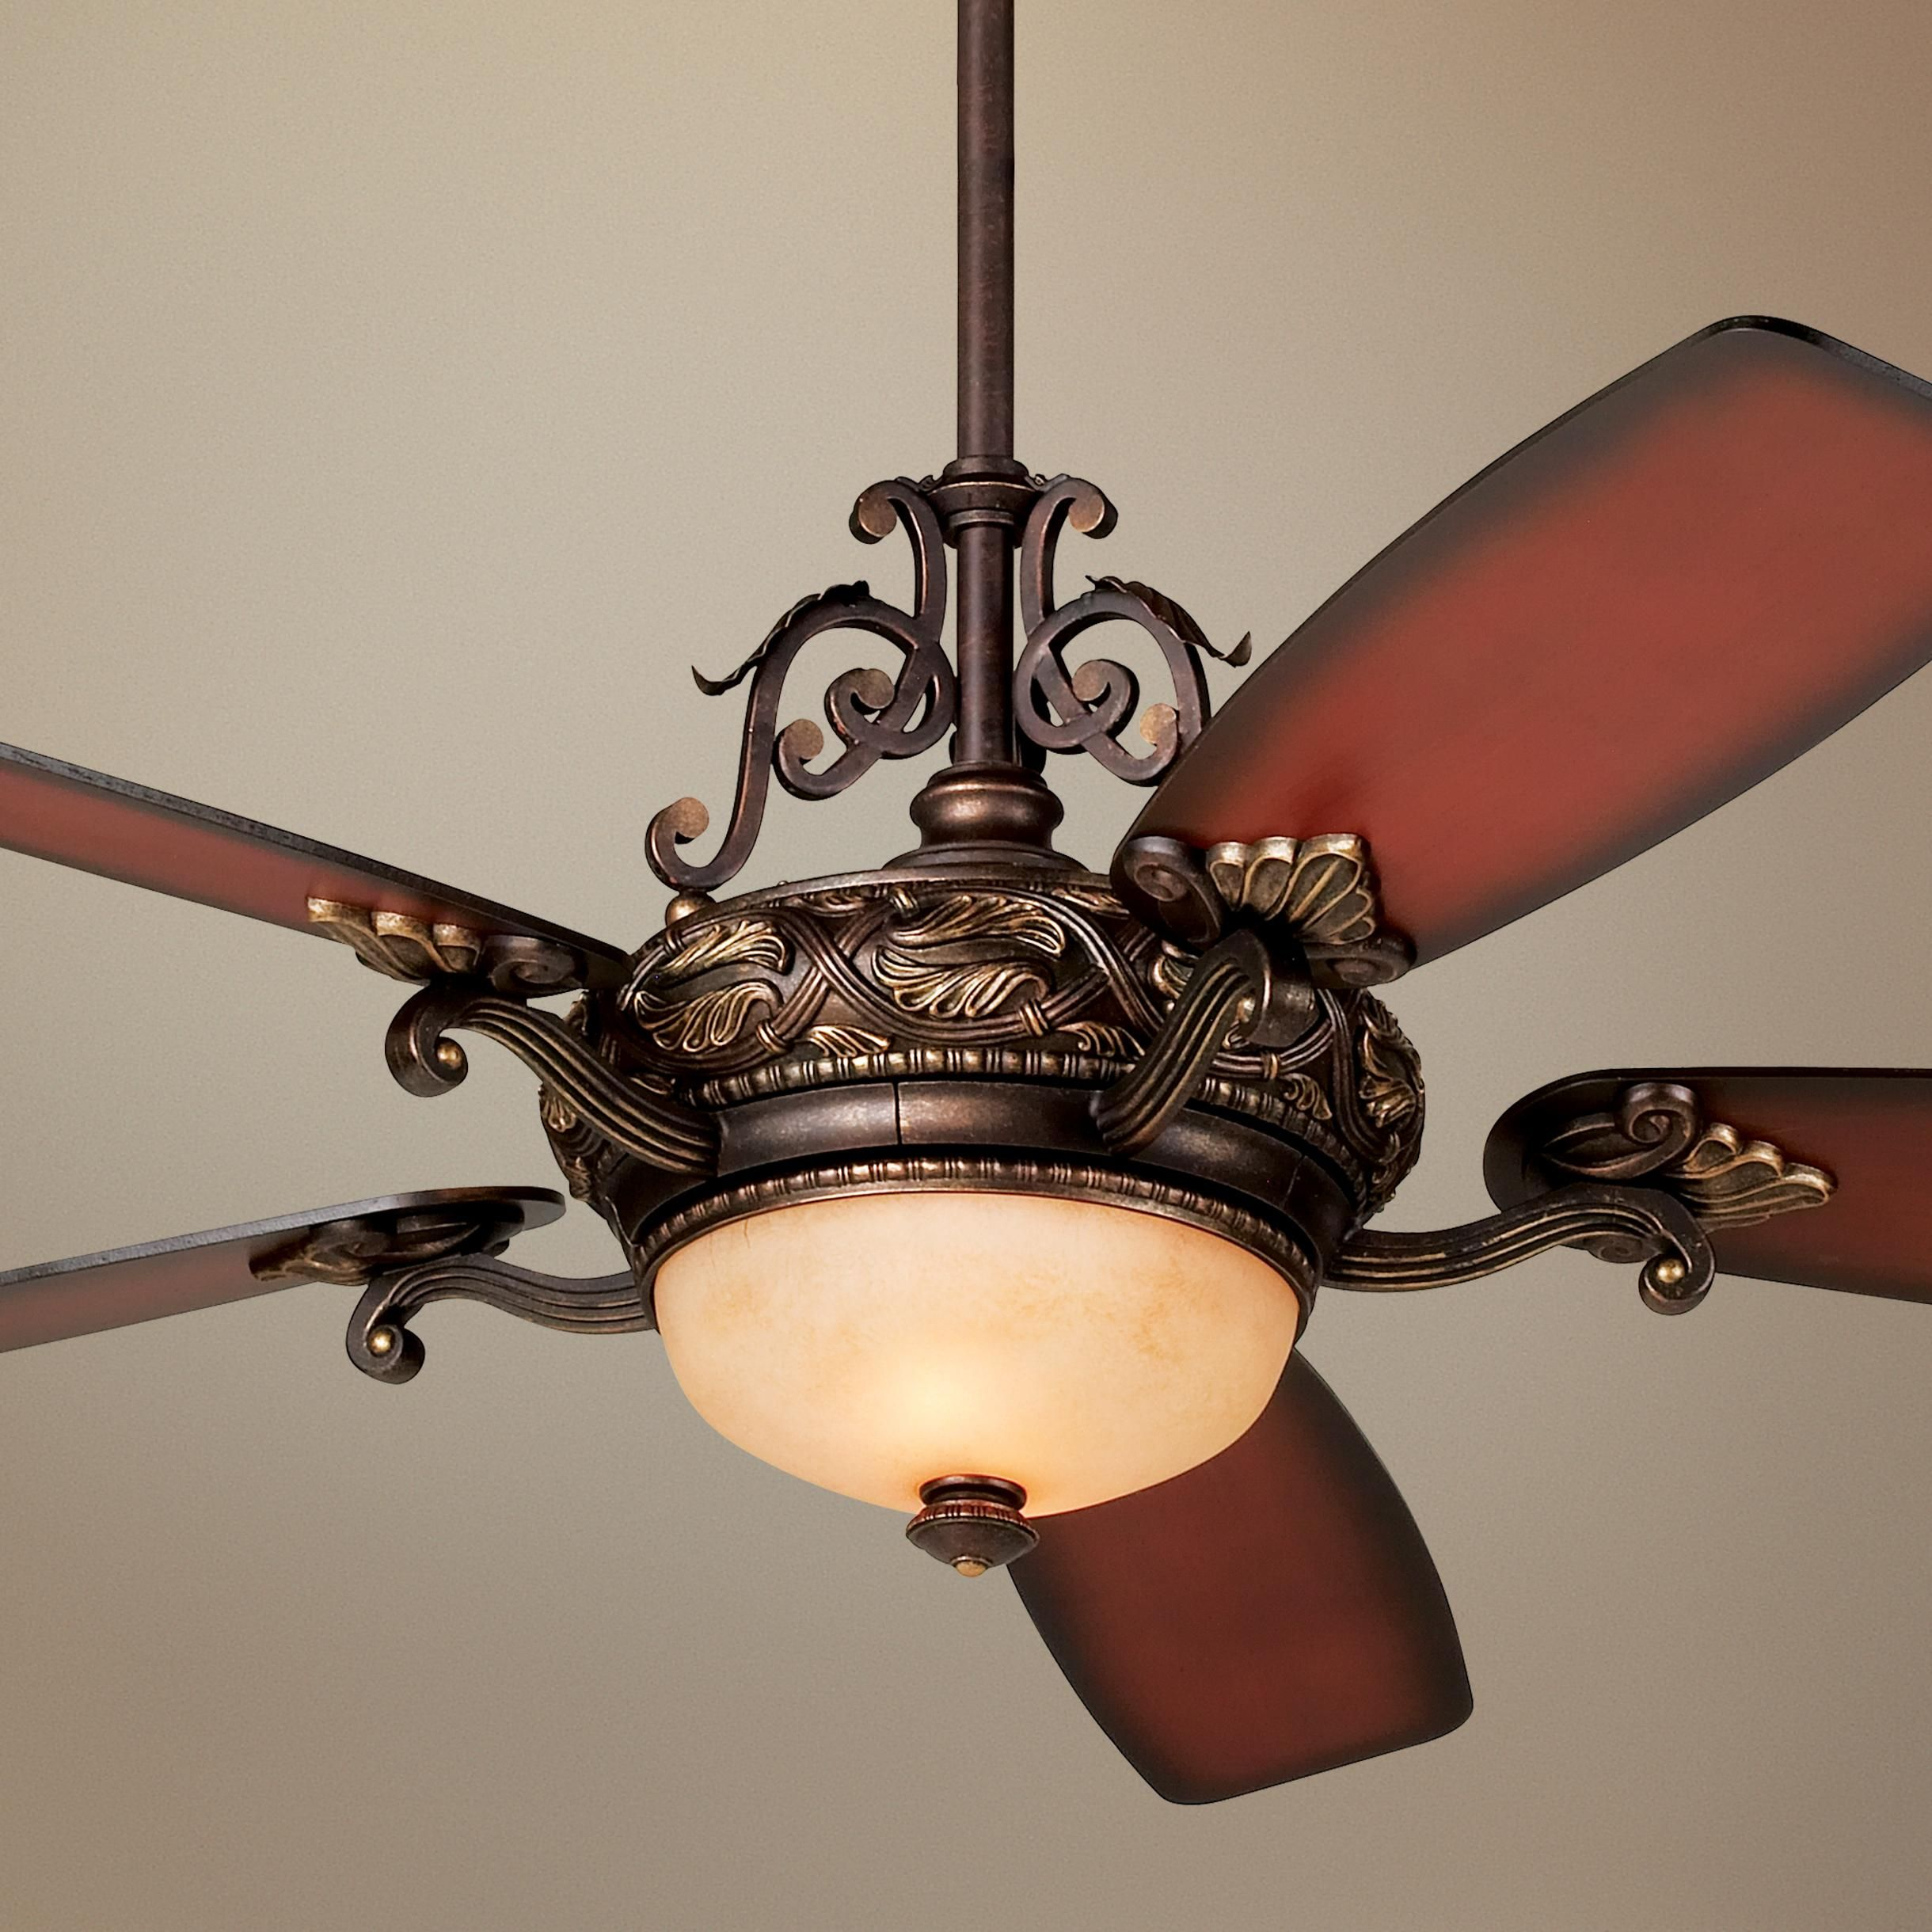 fans fan inches brown summer list price ceiling blade breeze in original india orient